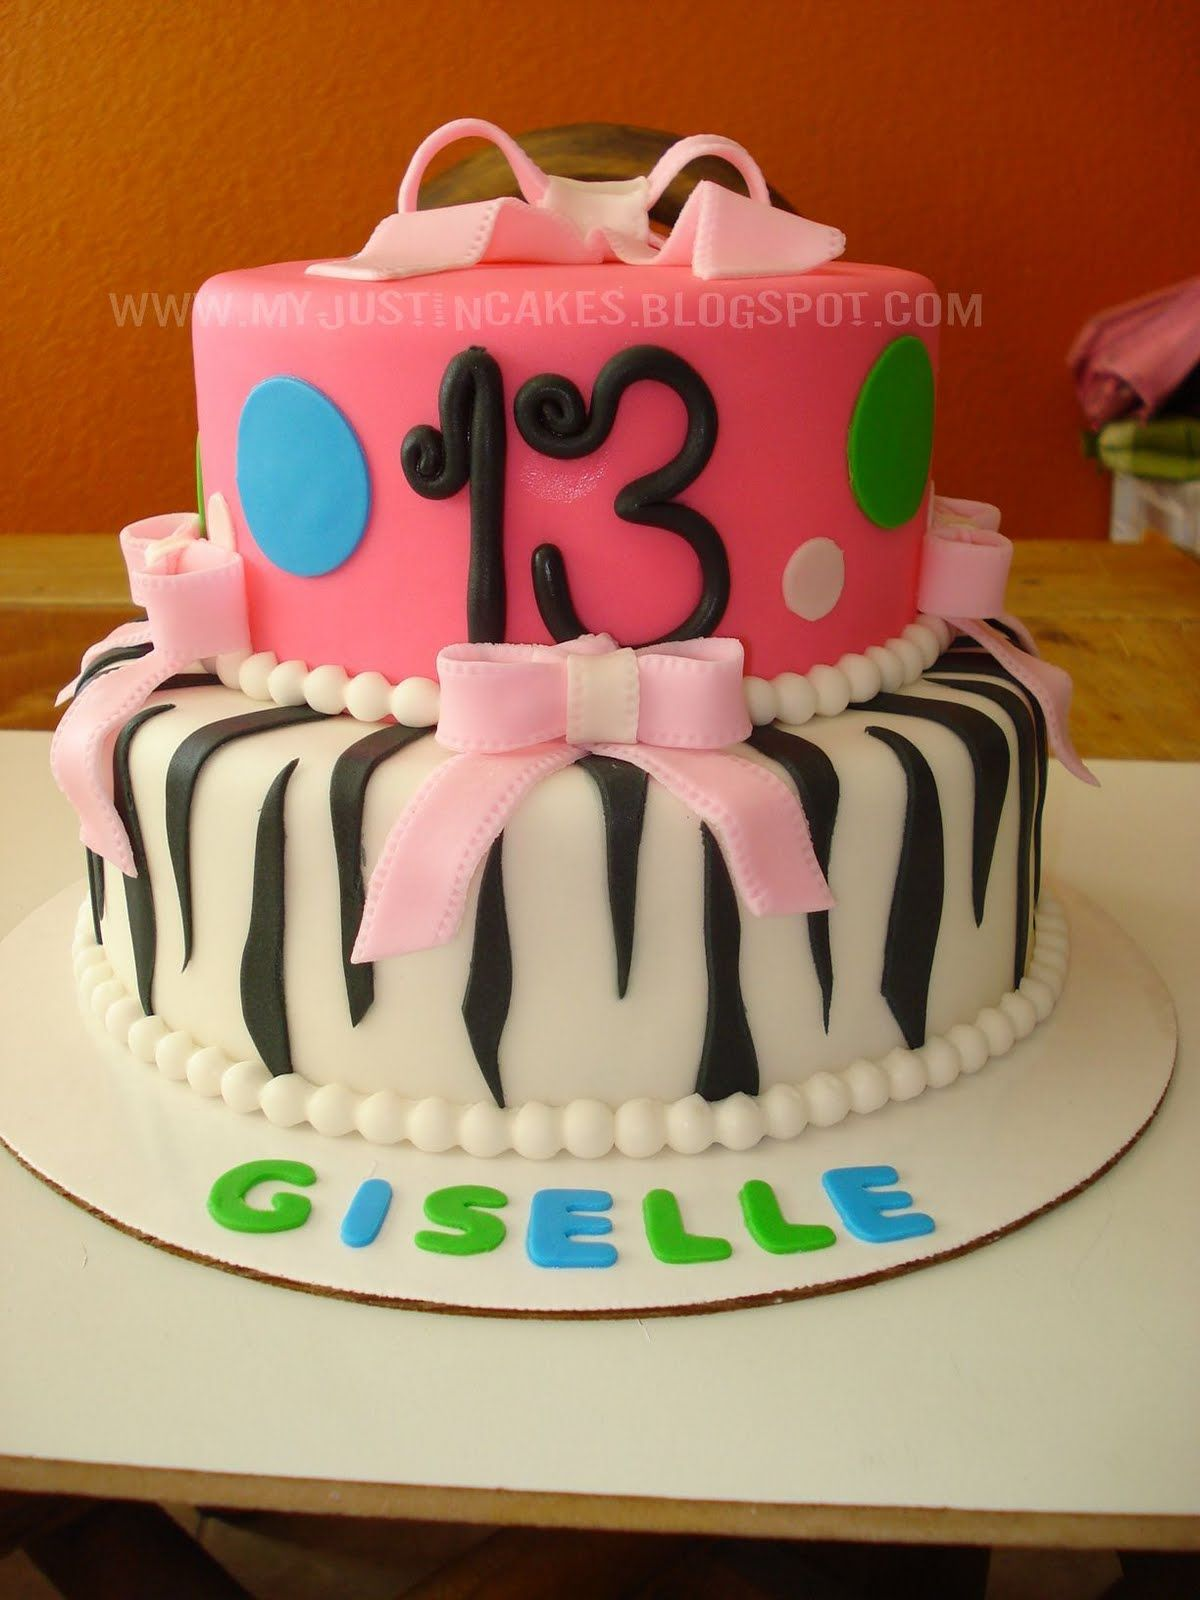 5 year old birthday girl party ideas | just in cakes: 13 year old